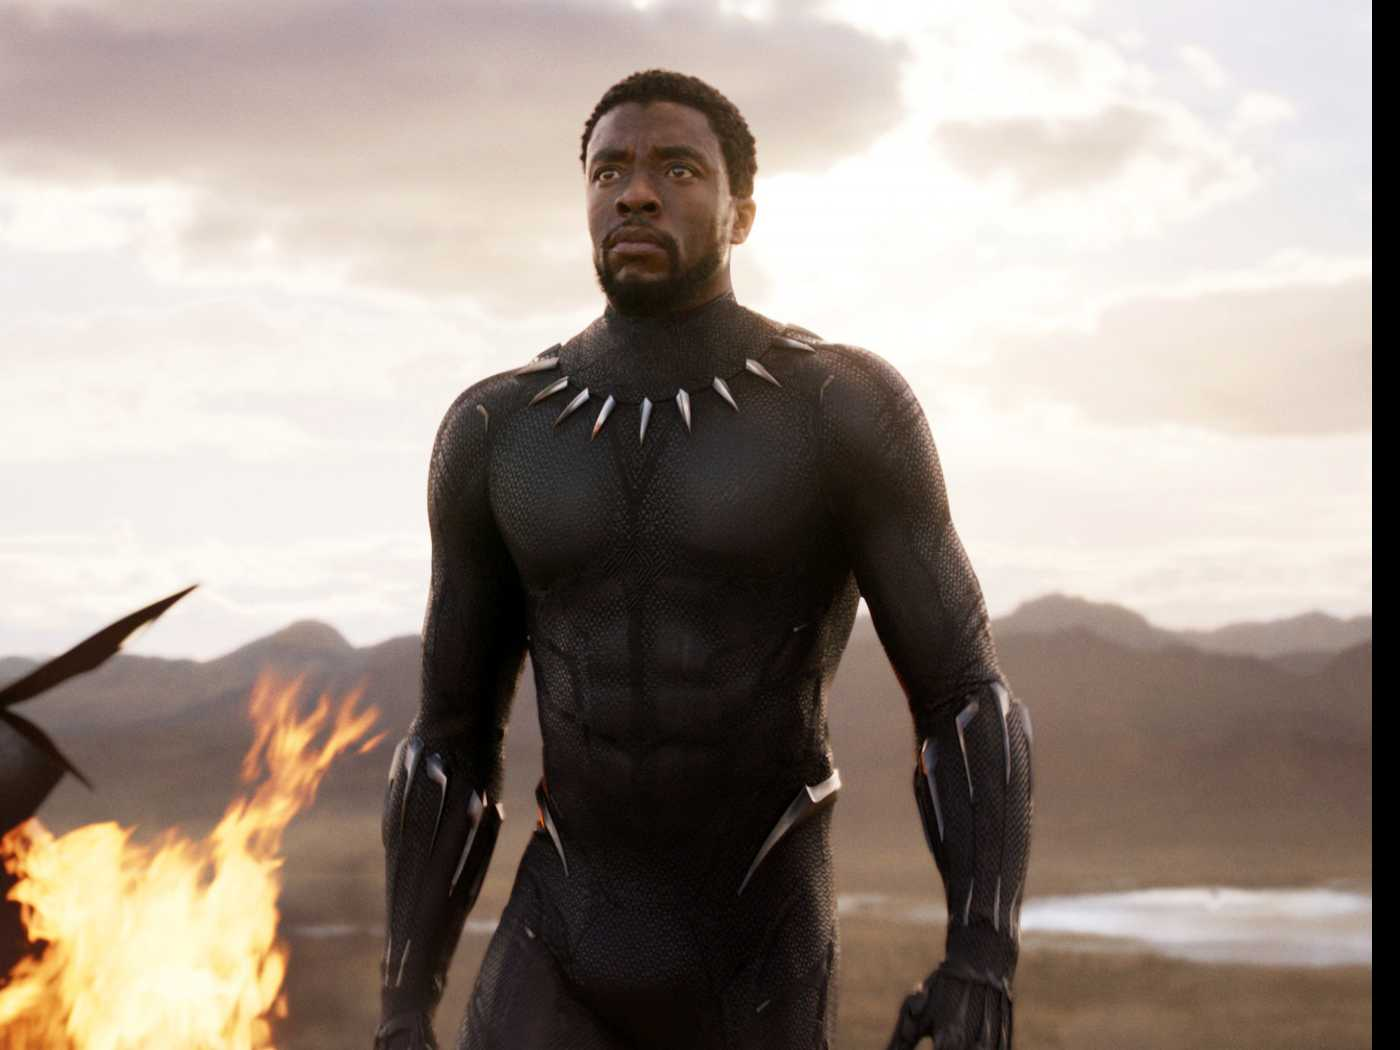 'Black Panther' Stays Strong with $108M in Second Weekend